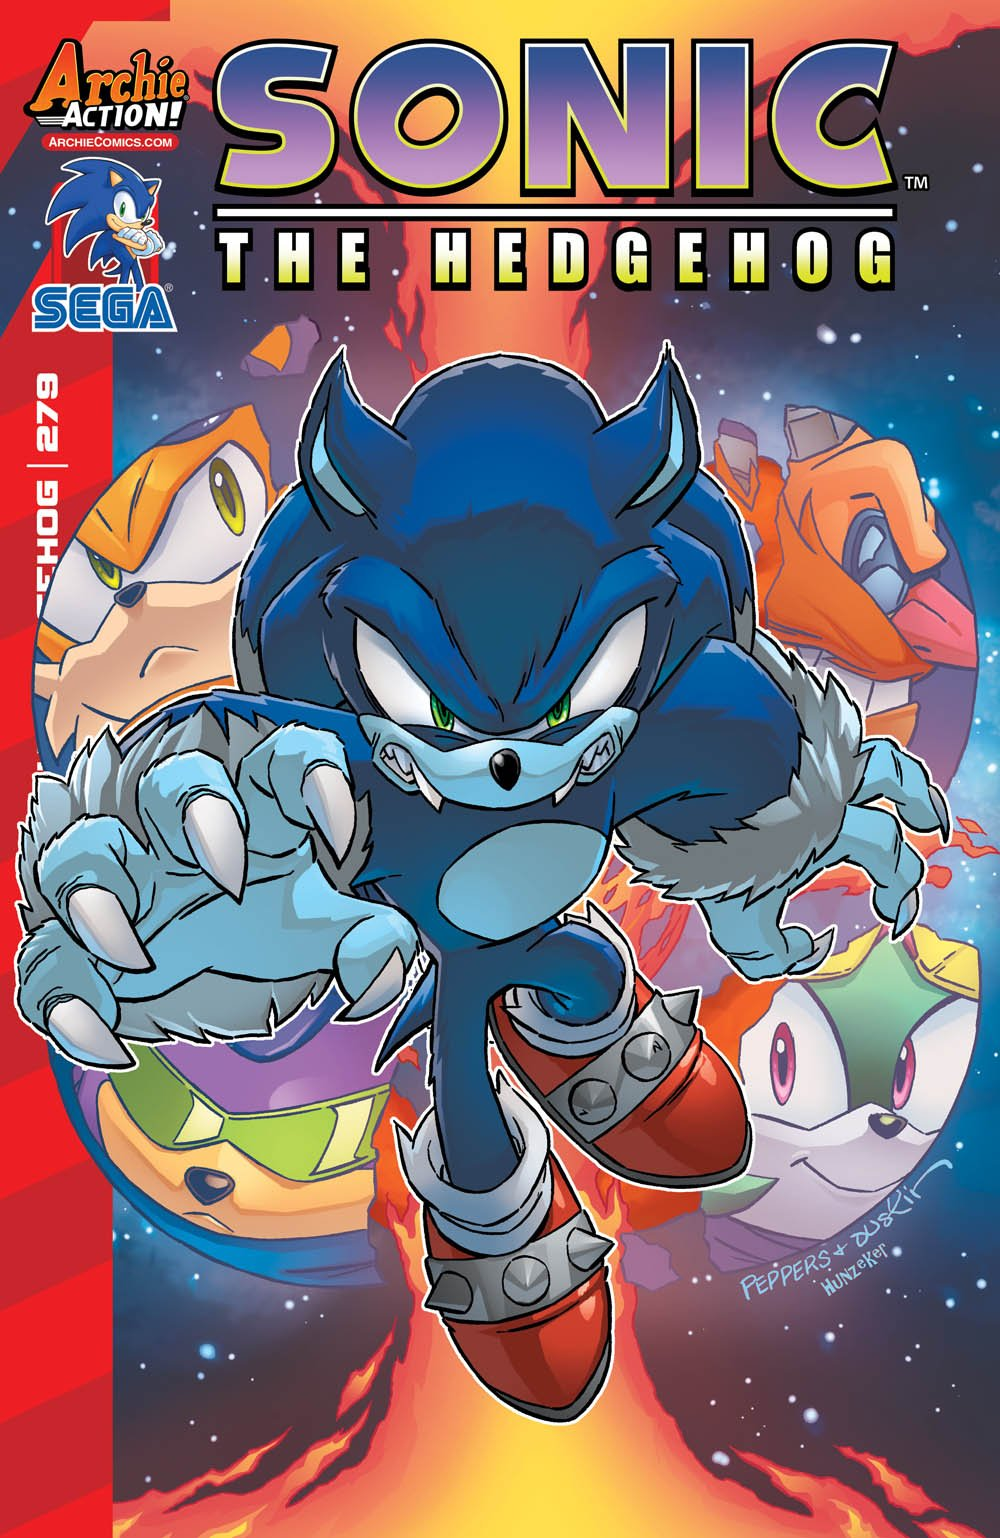 Sonic the Hedgehog 279 (May 2016)